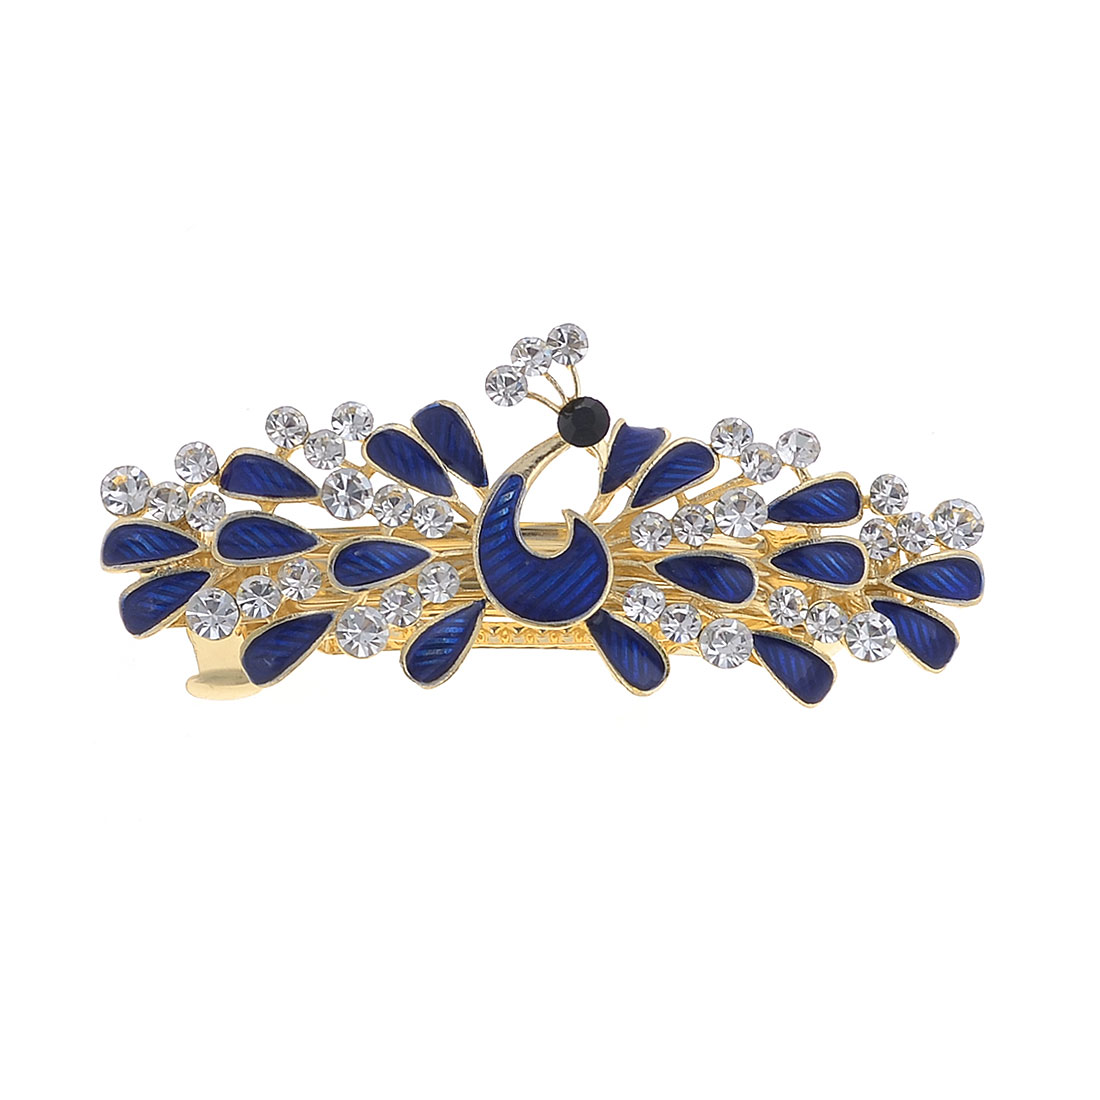 Lady Dark Blue Peacock Design Barrette French Clip